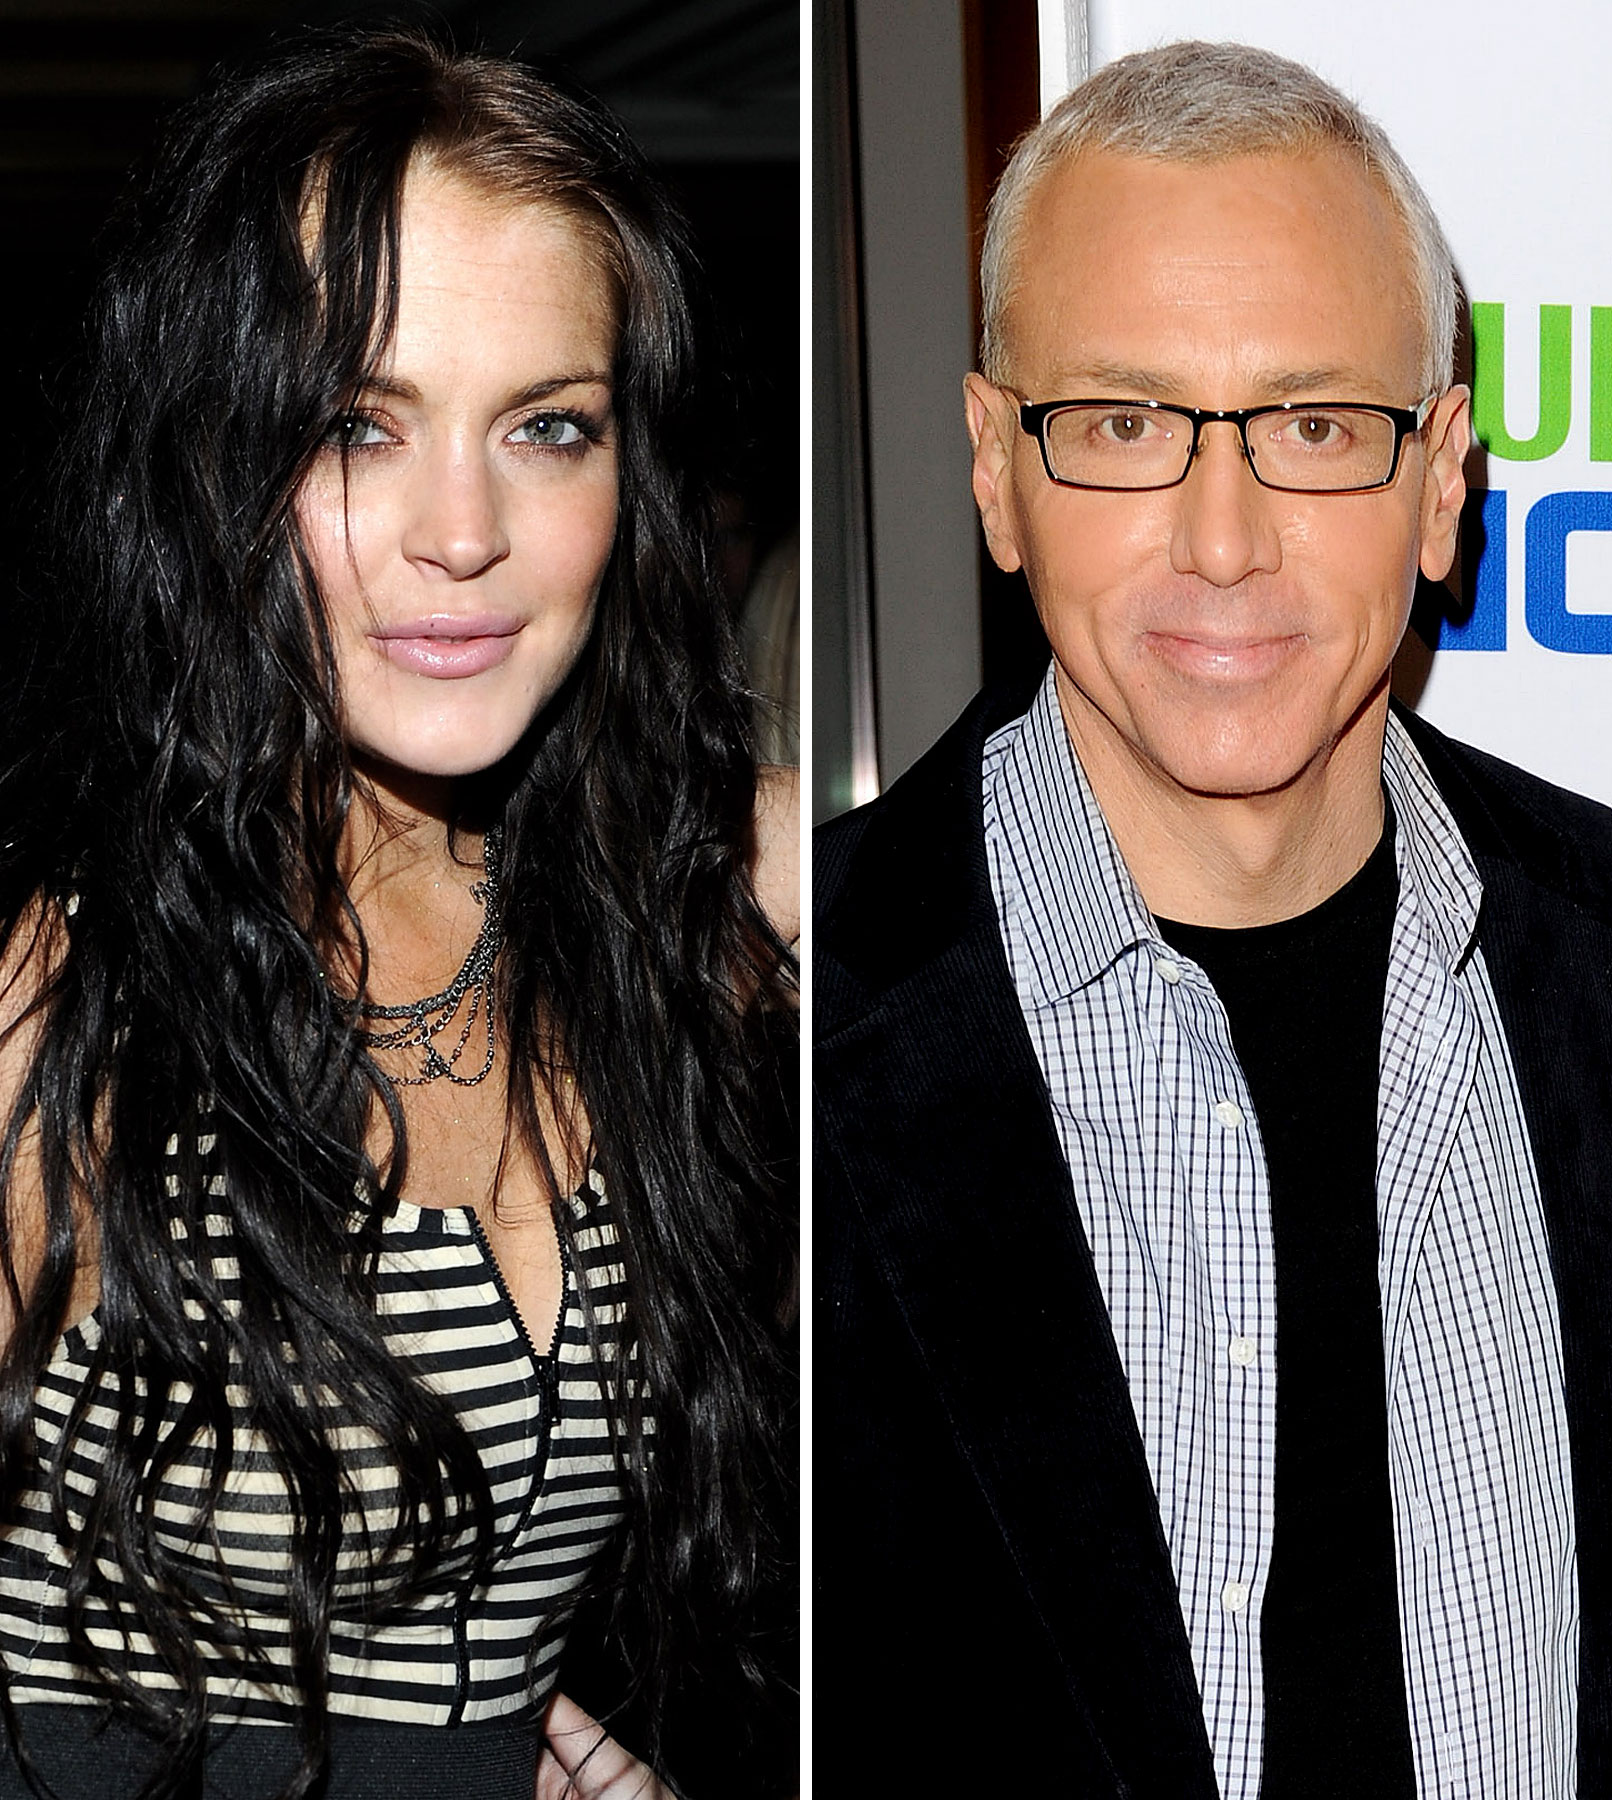 Dr. Drew Wants To Arrest Lindsay Lohan To Save Her From Herself